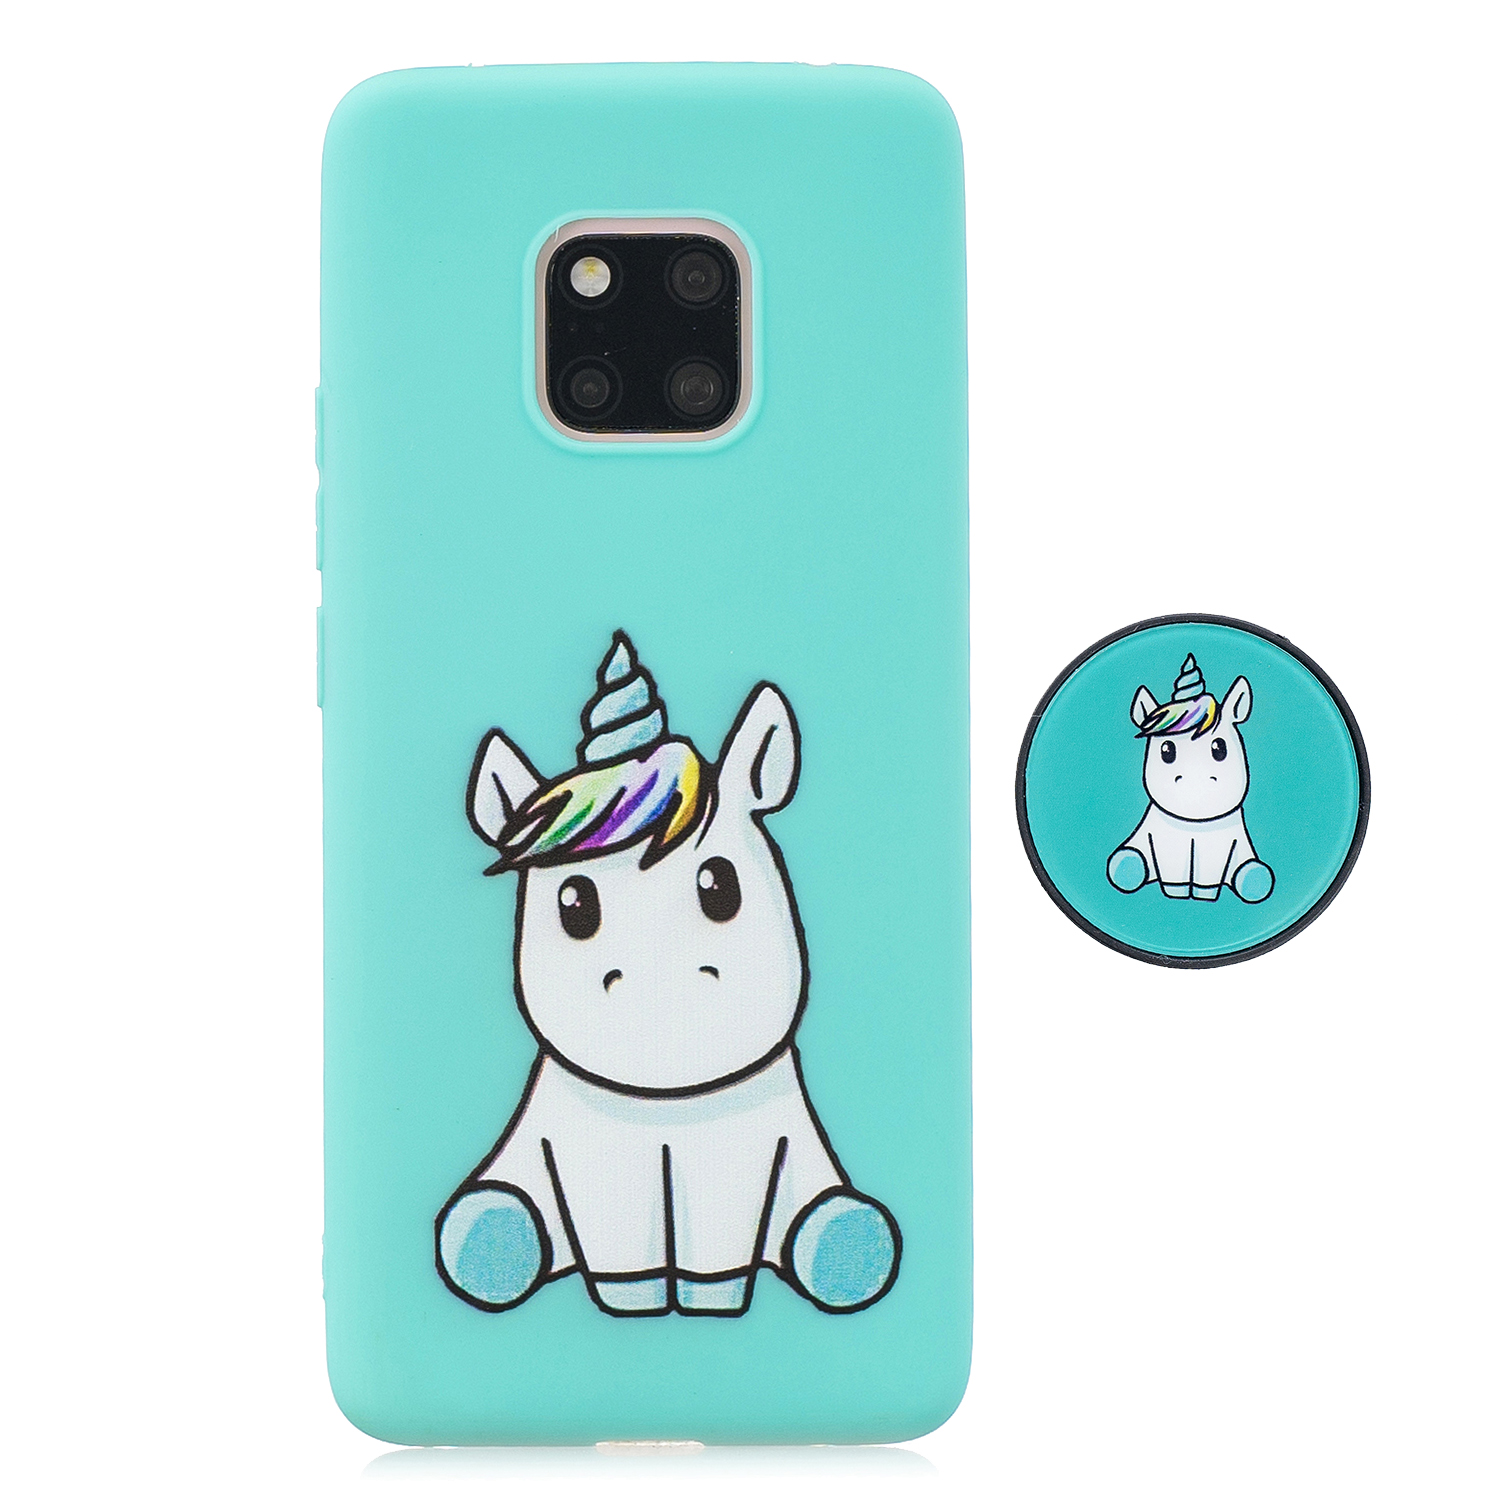 For HUAWEI MATE 20 pro Pure Color Phone Cover Cute Cartoon Phone Case Lightweight Soft TPU Phone Case with Matching Pattern Adjustable Bracket 5